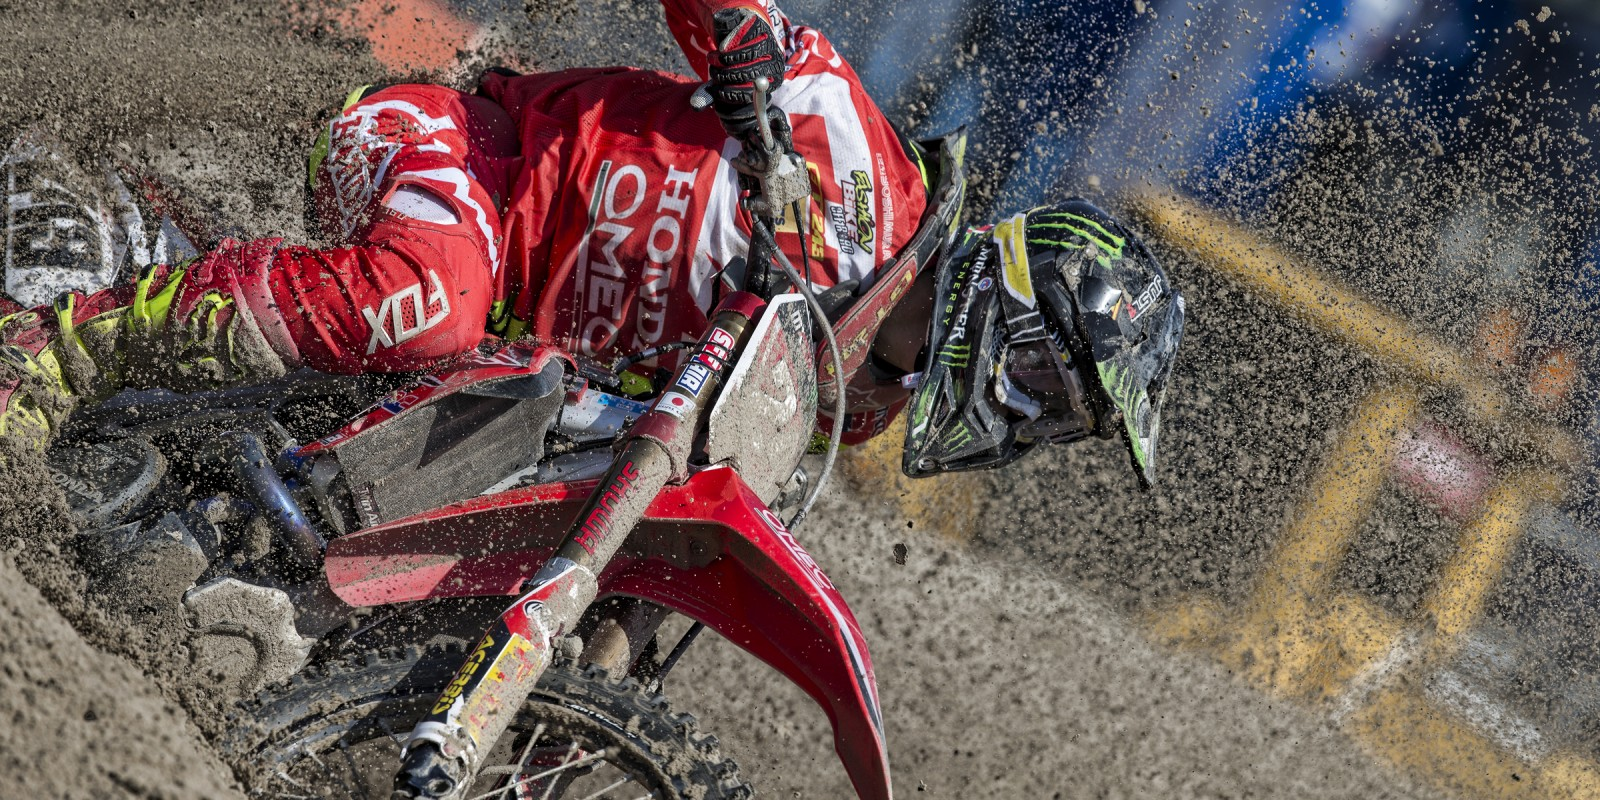 Tim Gajser at the 2016 MXGP of the Netherlands